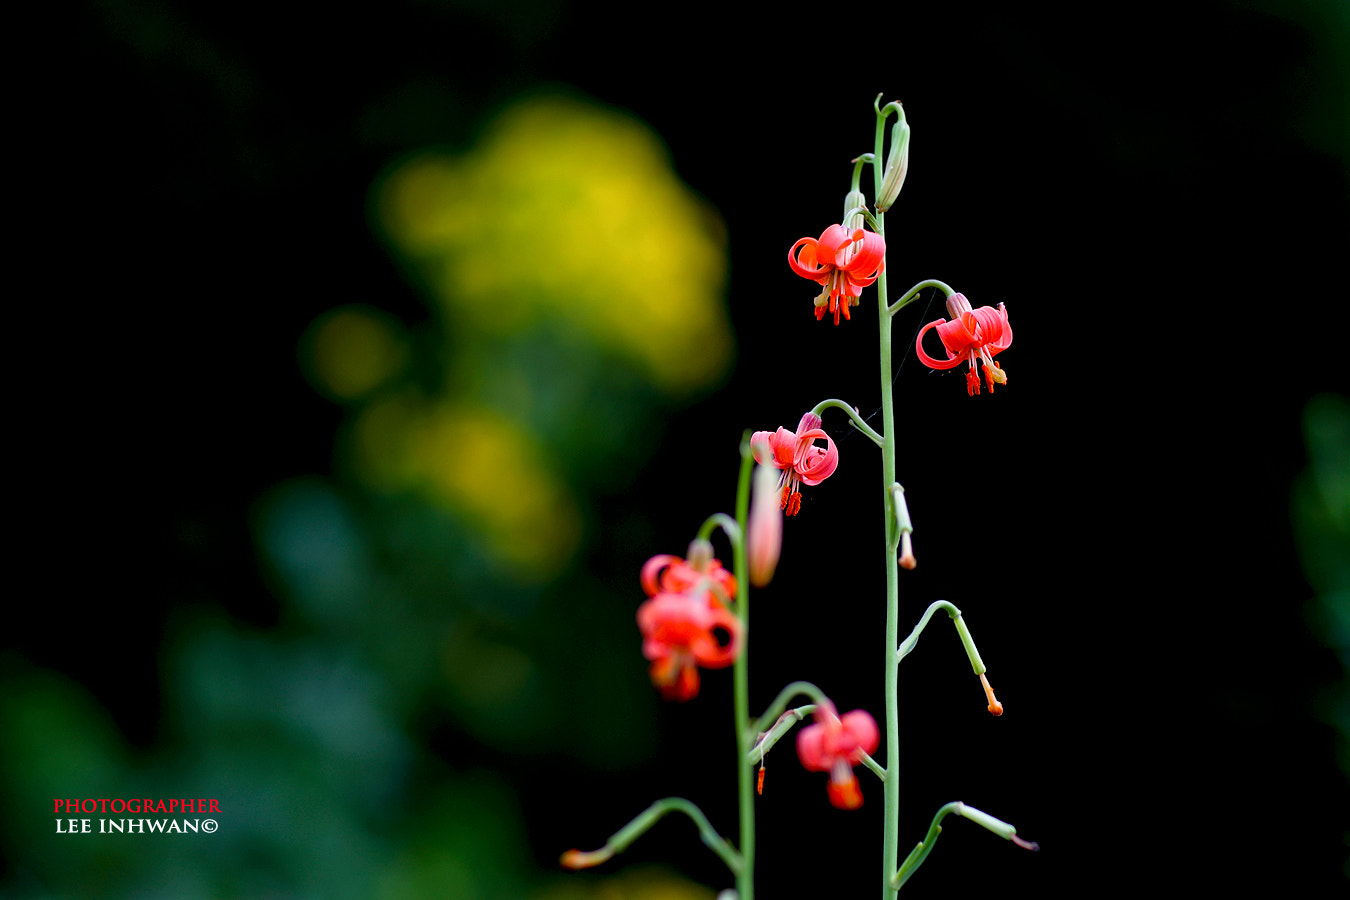 Photograph Slimstem lily by LEE INHWAN on 500px